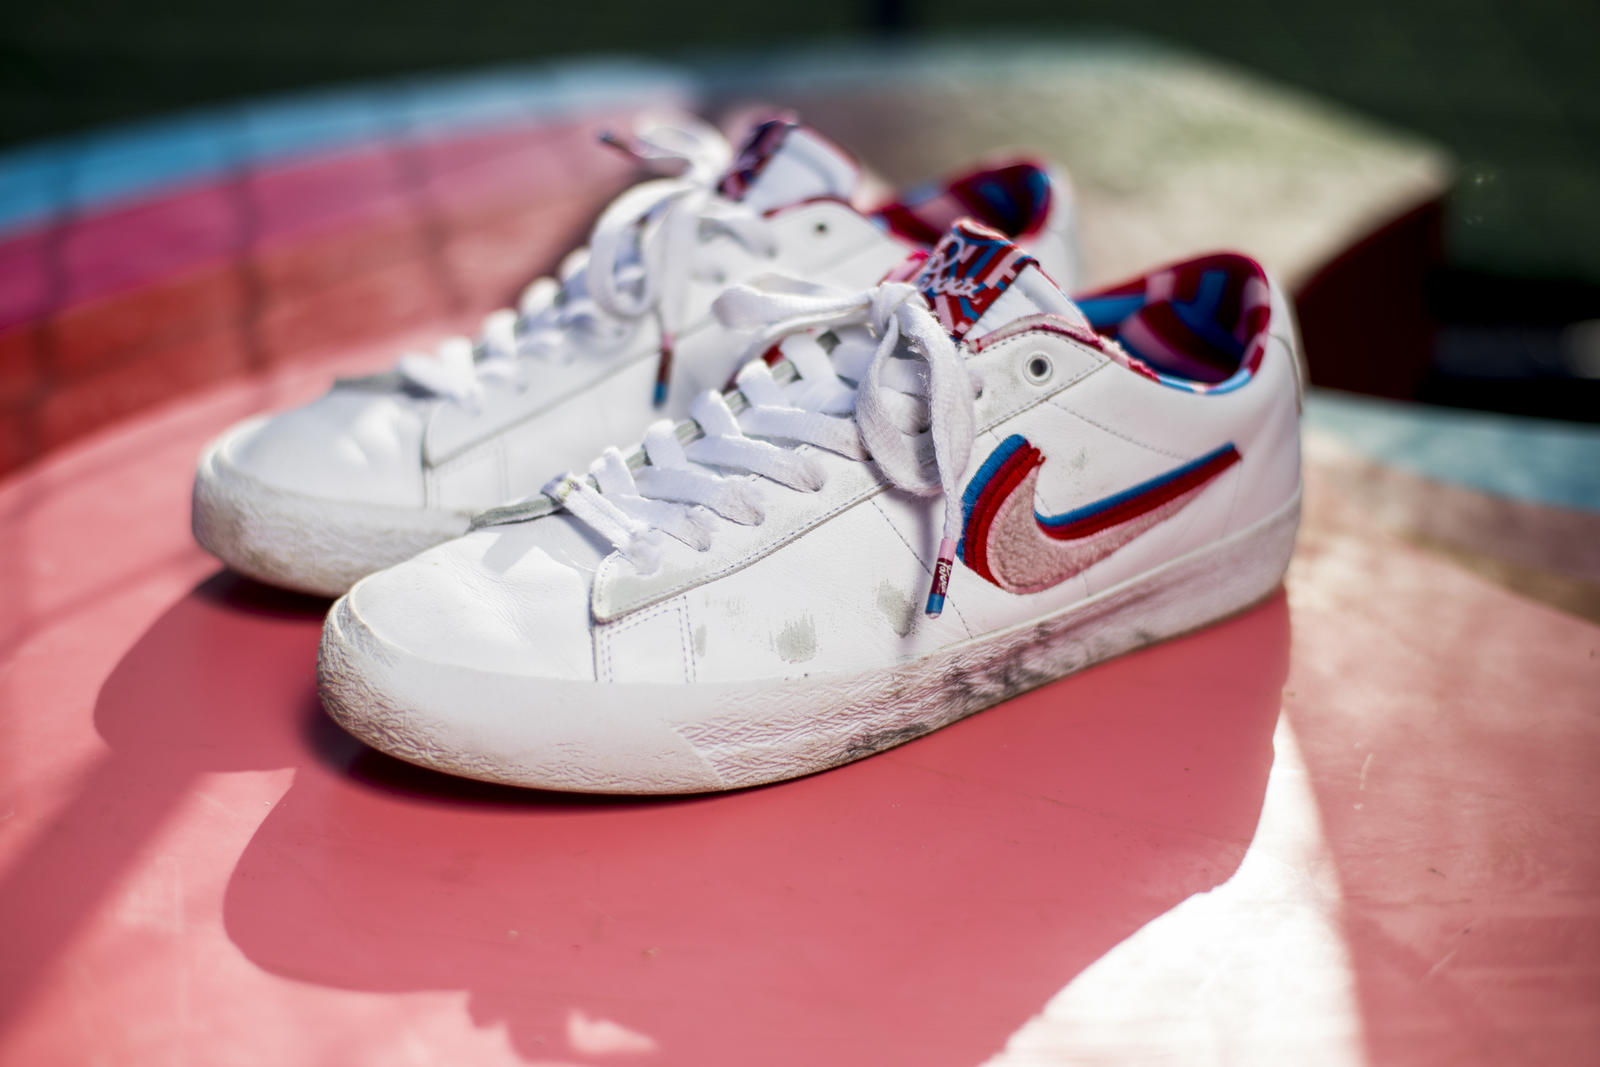 Nike SB x Parra Dunk and Blazer Official Images and Release Date 4